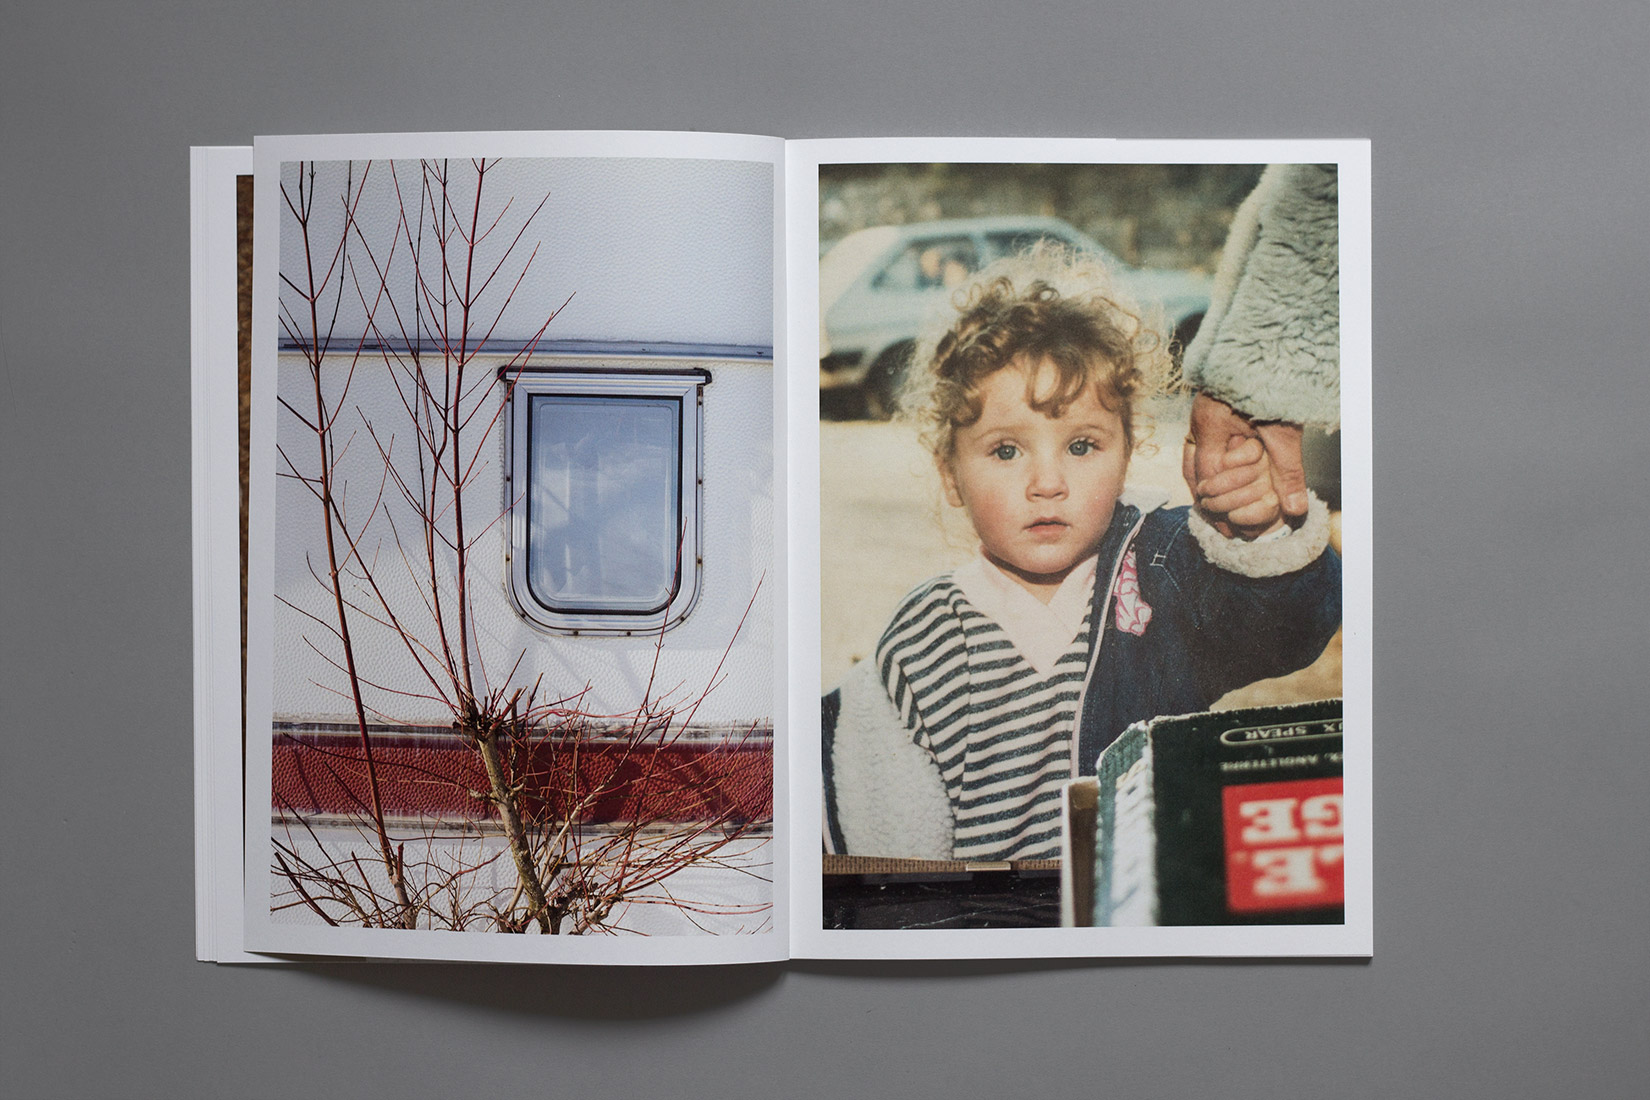 Les Brenets - Camping, window of caravan, tree, portrait of young girl, book, photography